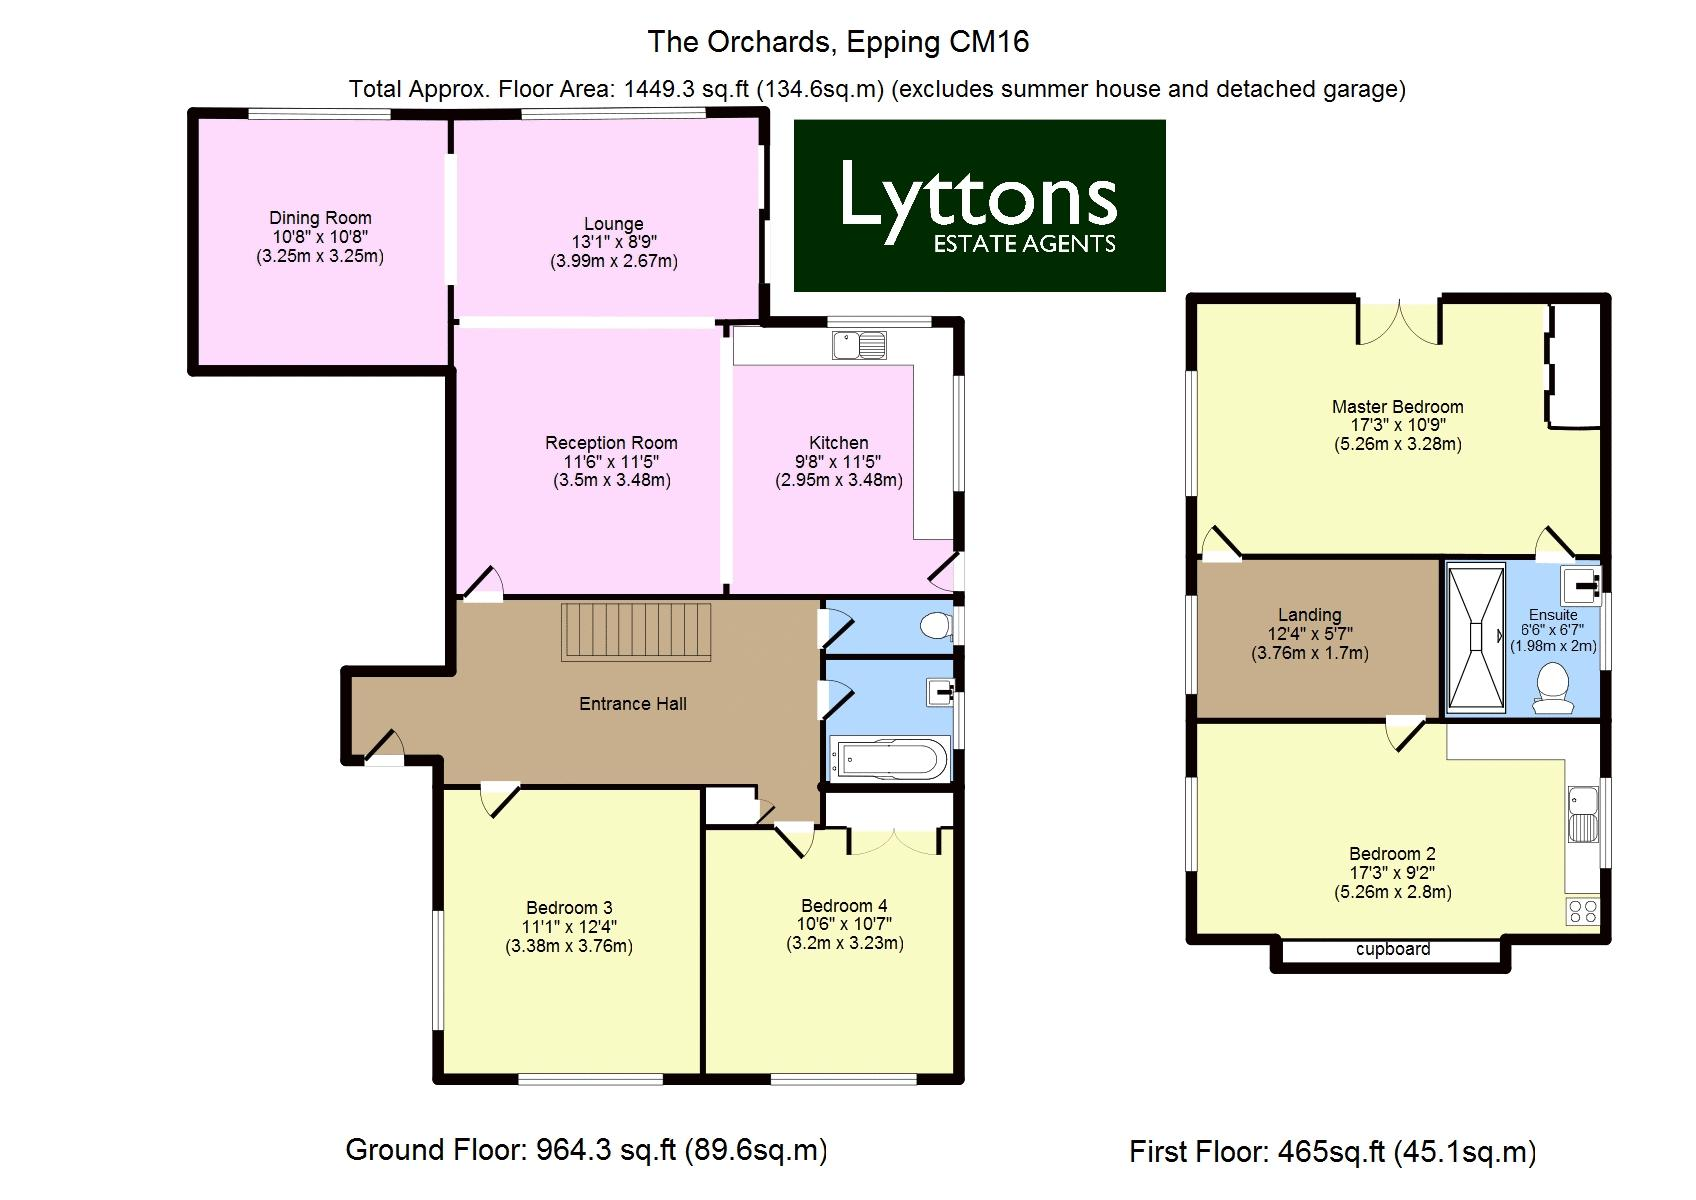 The Orchards, Epping Floor Plan